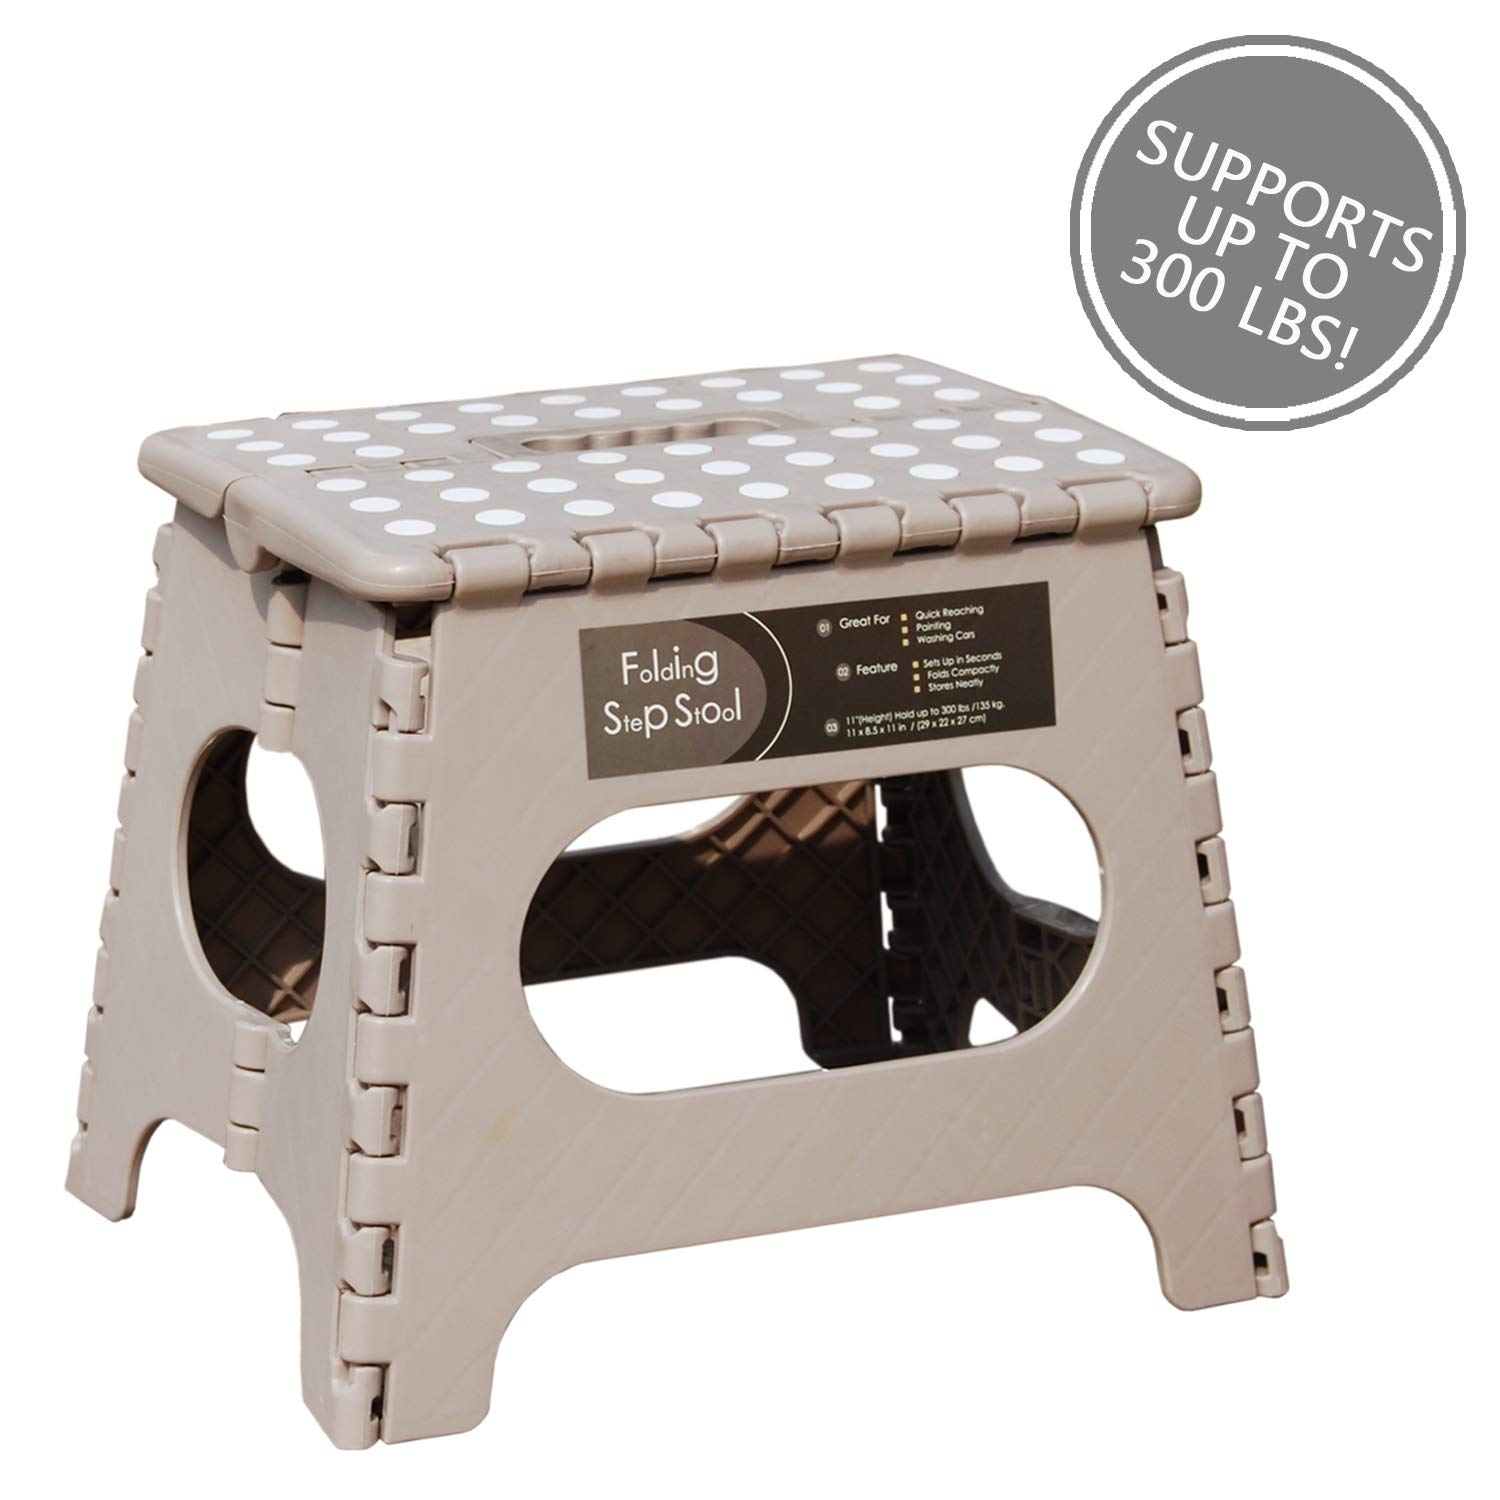 """Folding Step Stool - 11"""" Height - Holds up 300 Lbs Lightweight Foldable Stepping Stool is Sturdy Enough to Support Adults & Safe Enough for Kids. Skid Resistant and Open with one flip (Light Tan)"""